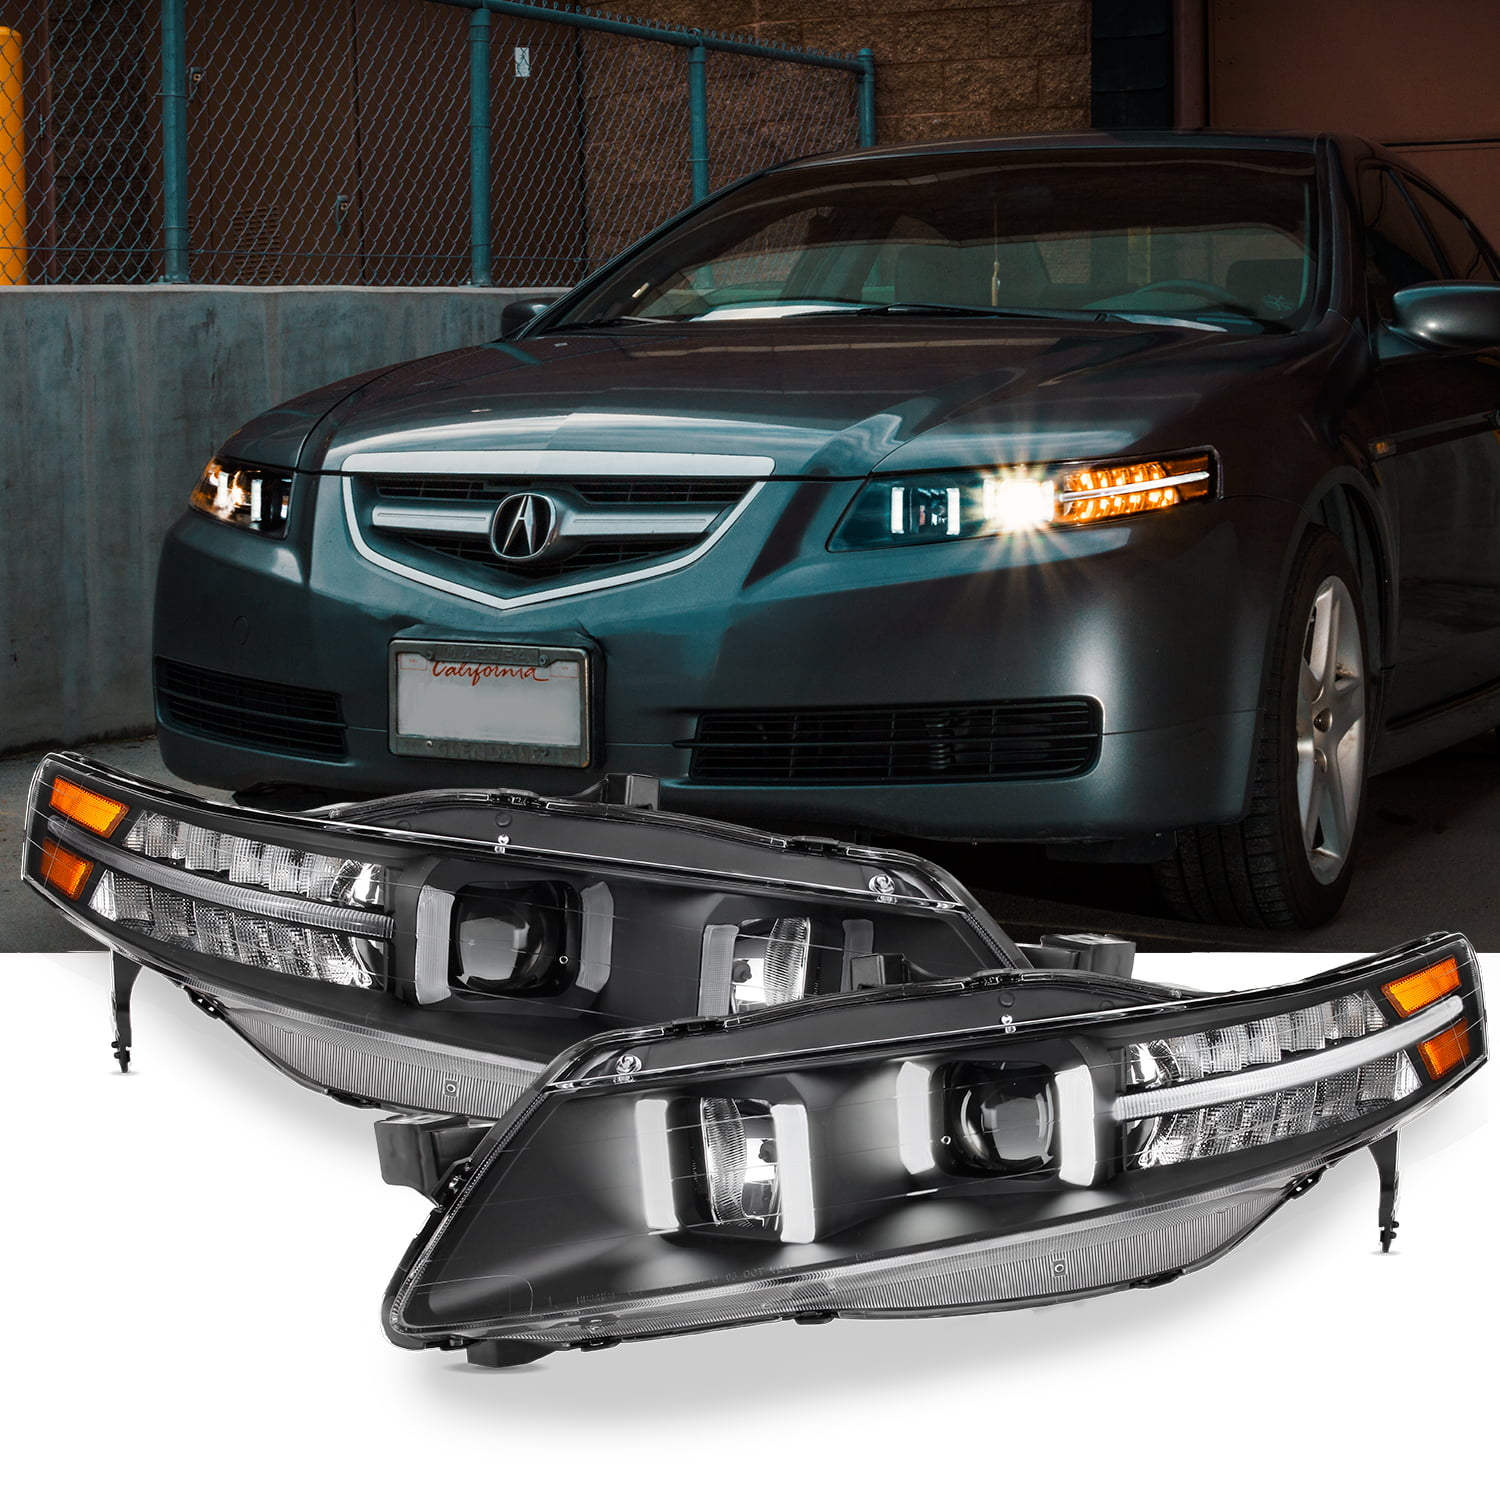 [Black] Fits 2004-2008 UA7 Acura TL LED Projector